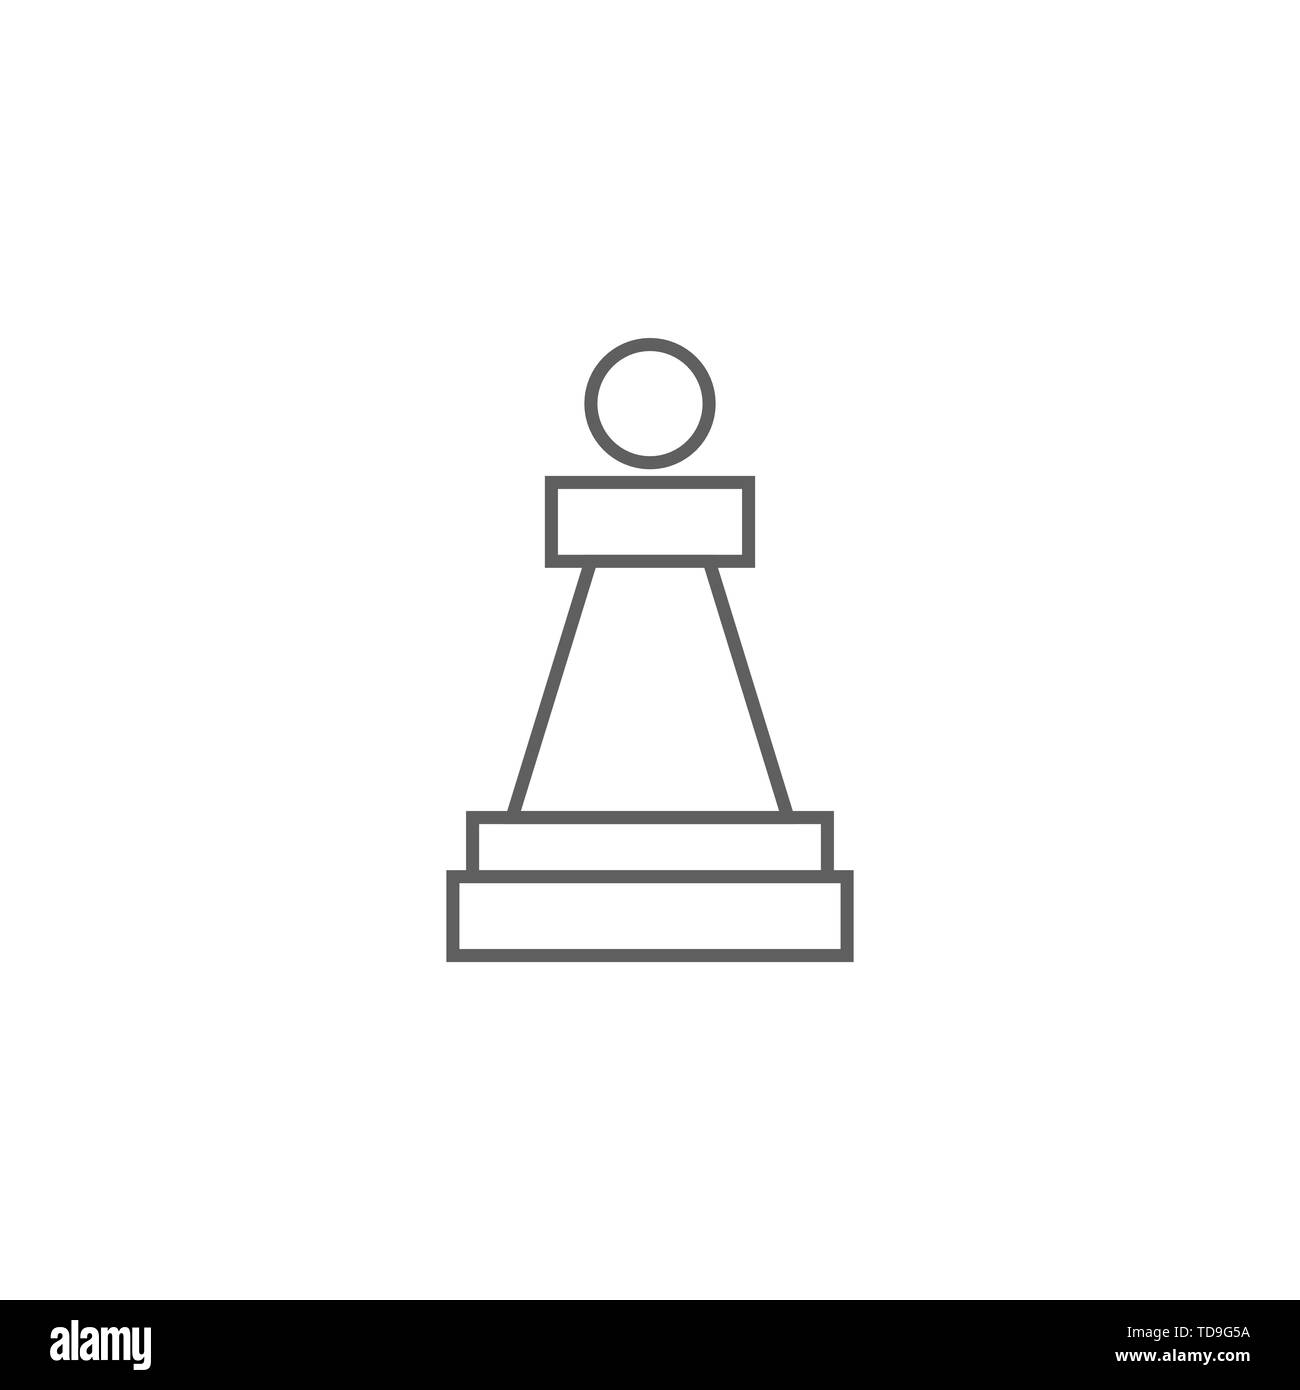 Chess Piece Pawn Related Vector Thin Line Icon. Isolated on White Background. Editable Stroke. Vector Illustration. - Stock Image